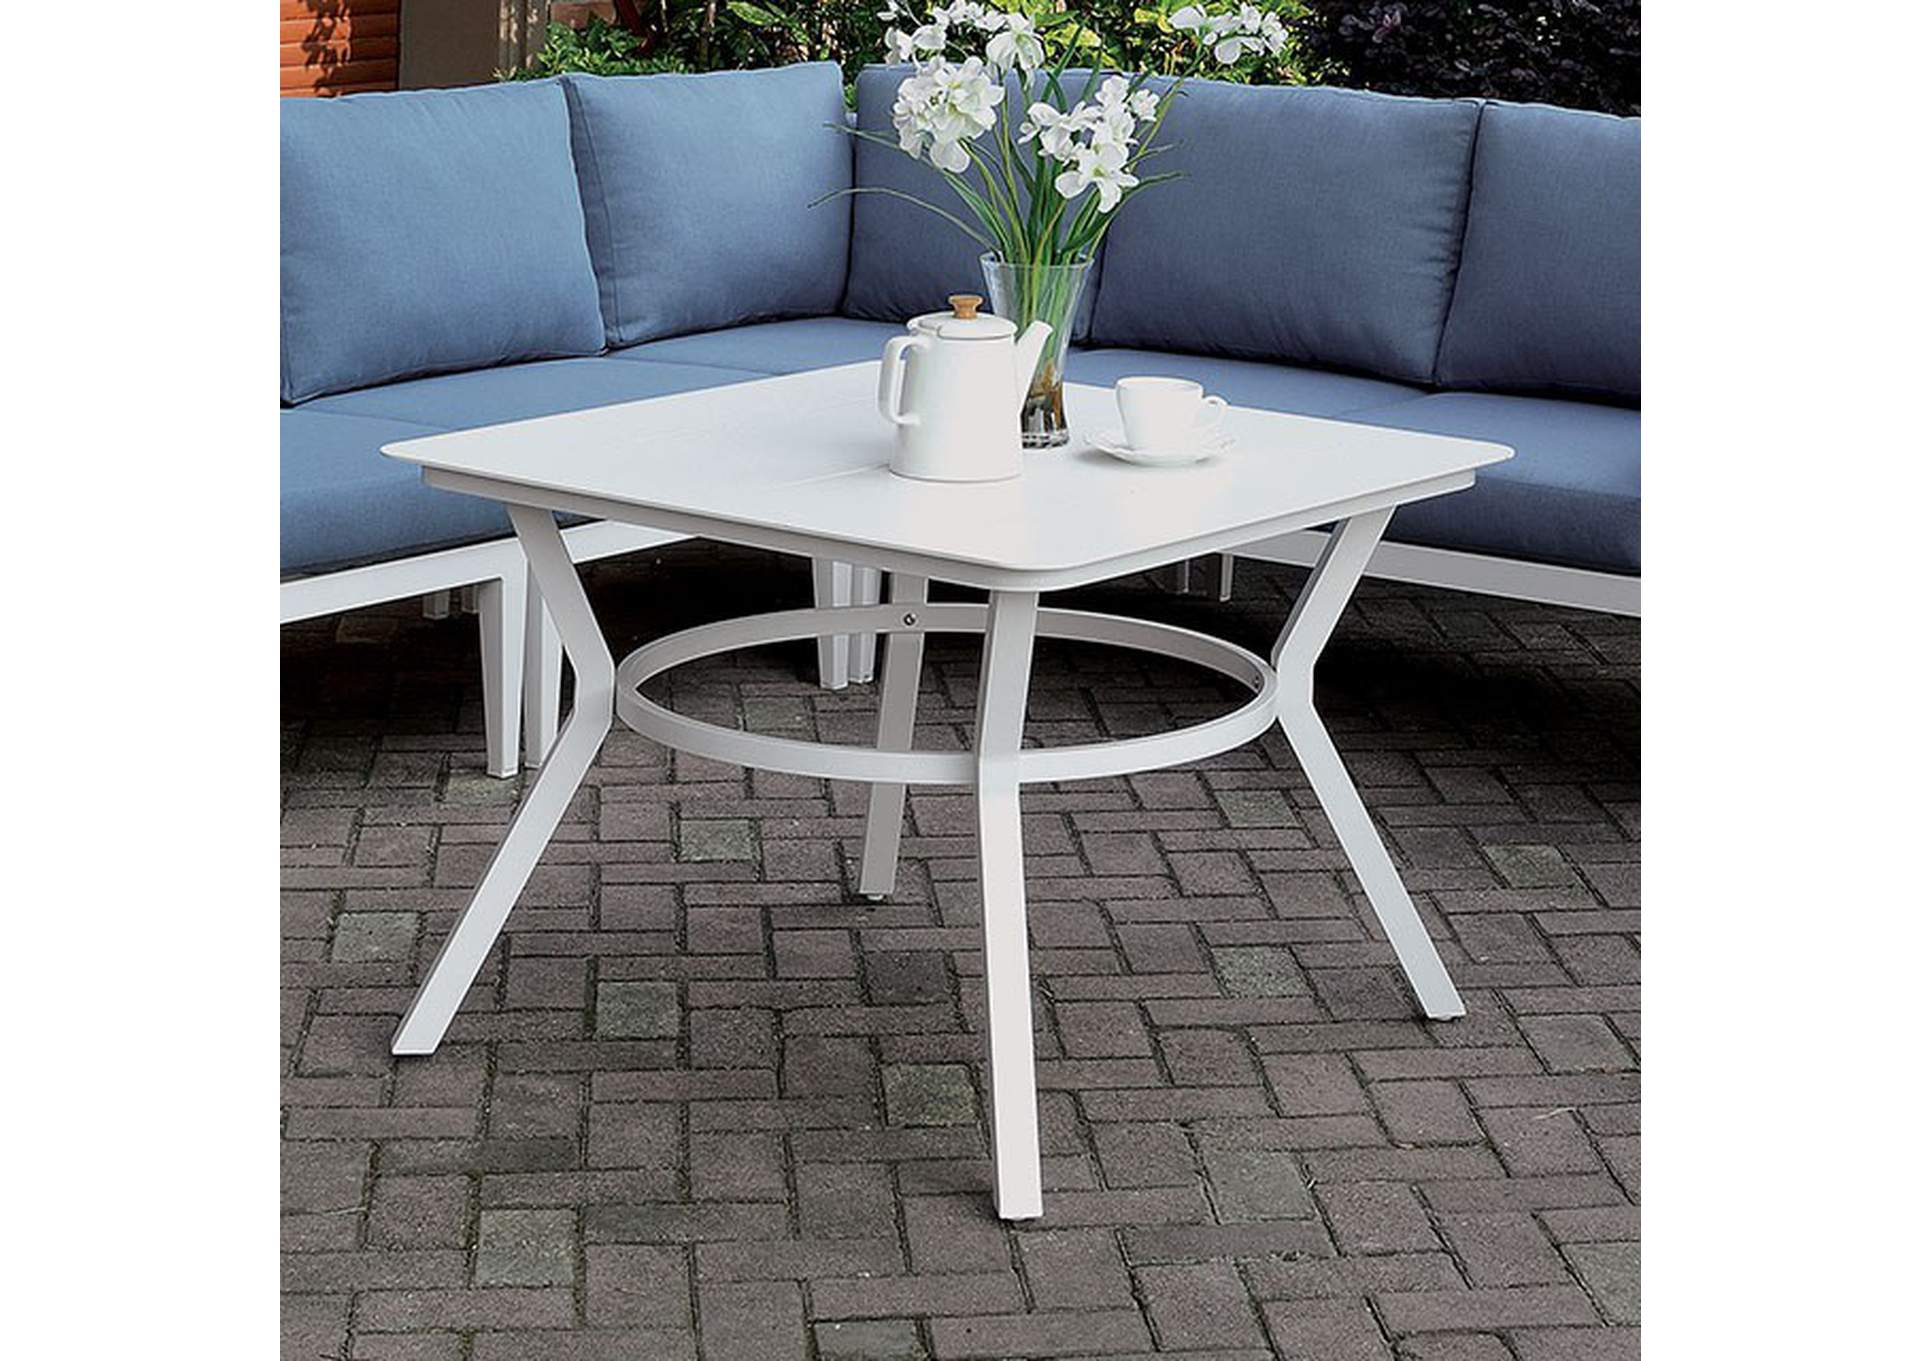 Sharon White Patio Table,Furniture of America